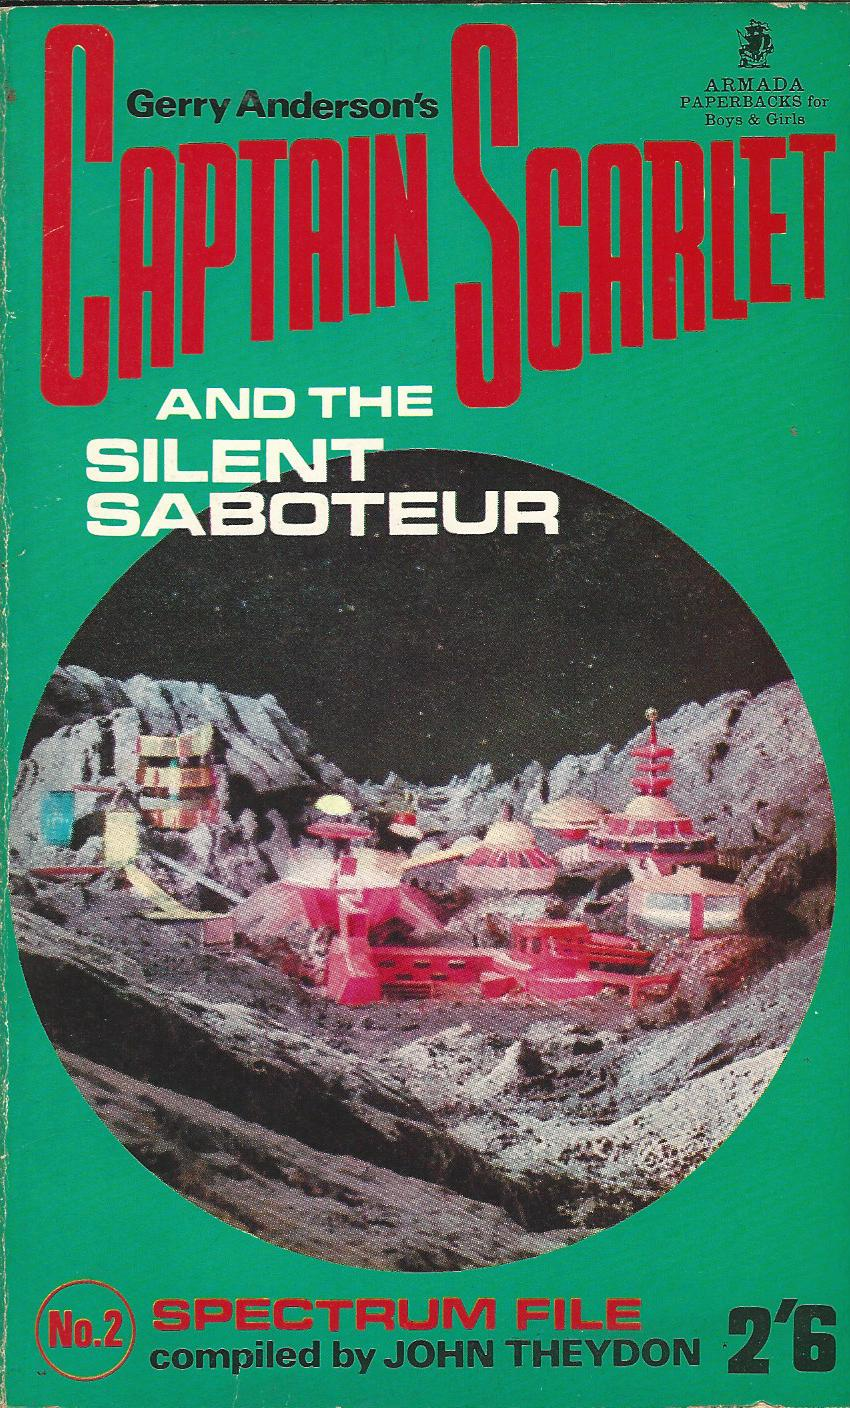 Image for Captain Scarlet and the Silent Saboteur.